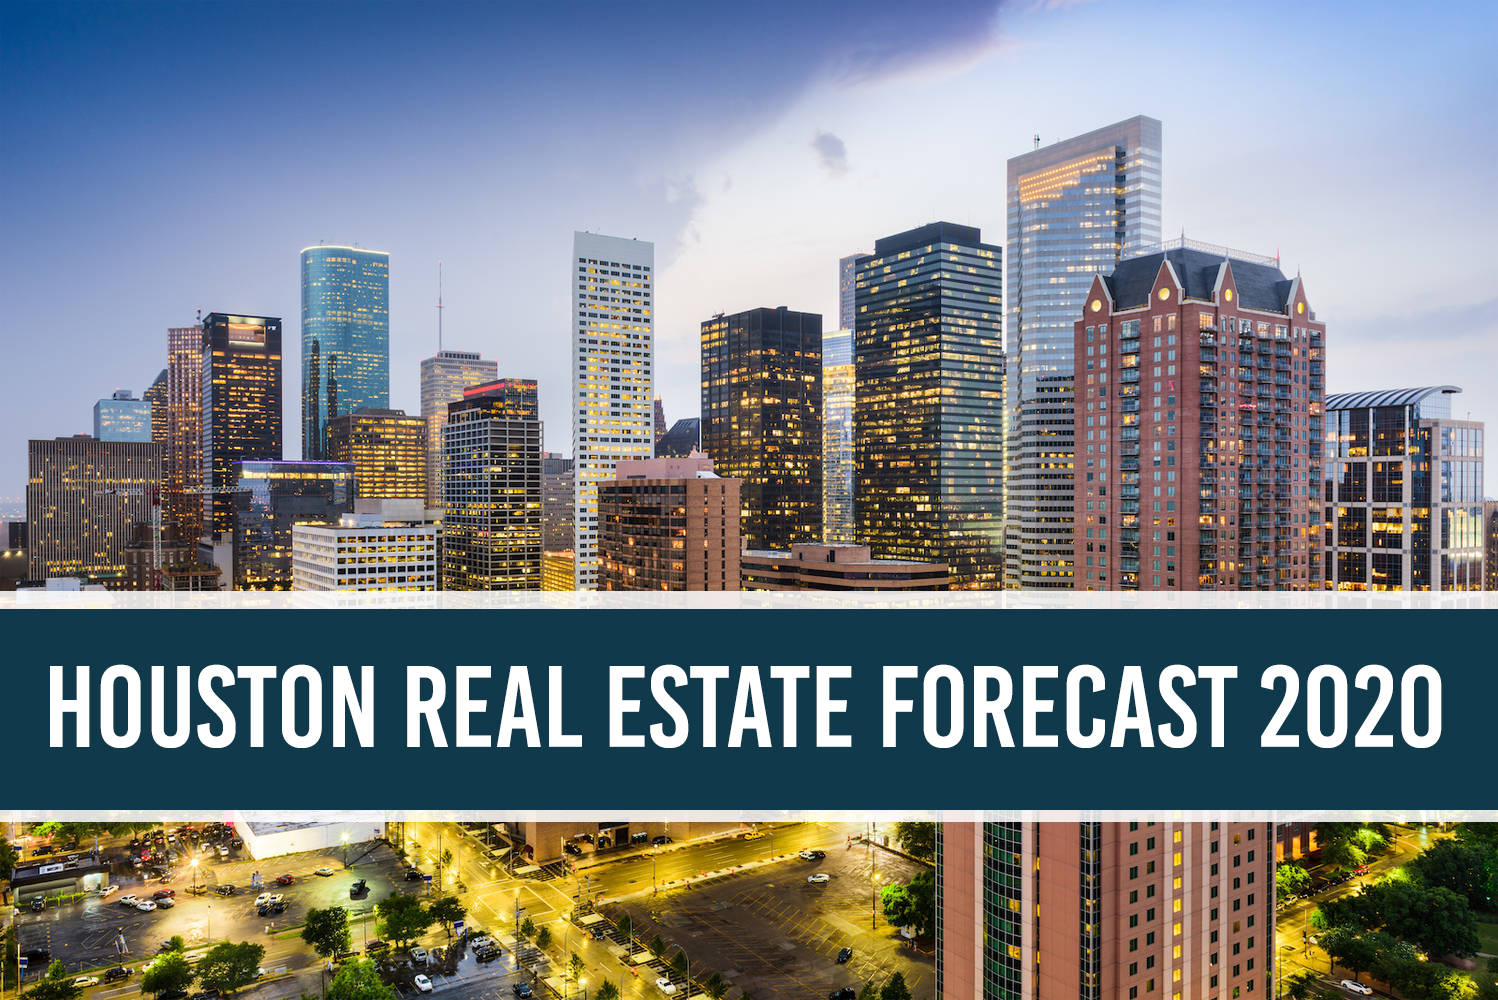 Houston Real Estate 2020 Forecast